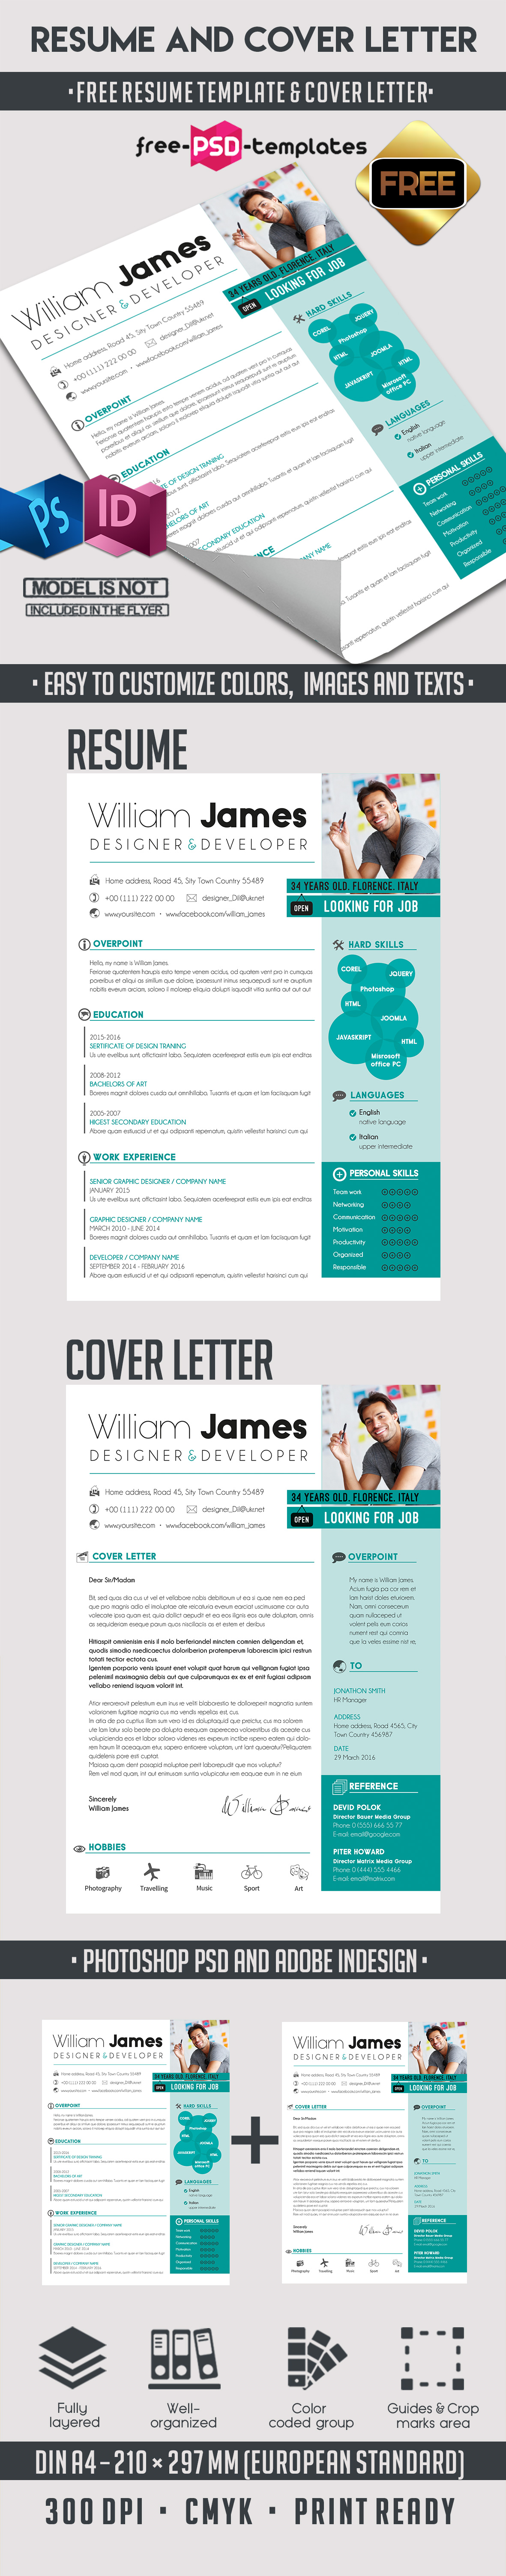 Bigpreview_free-resume-template-cover-letter